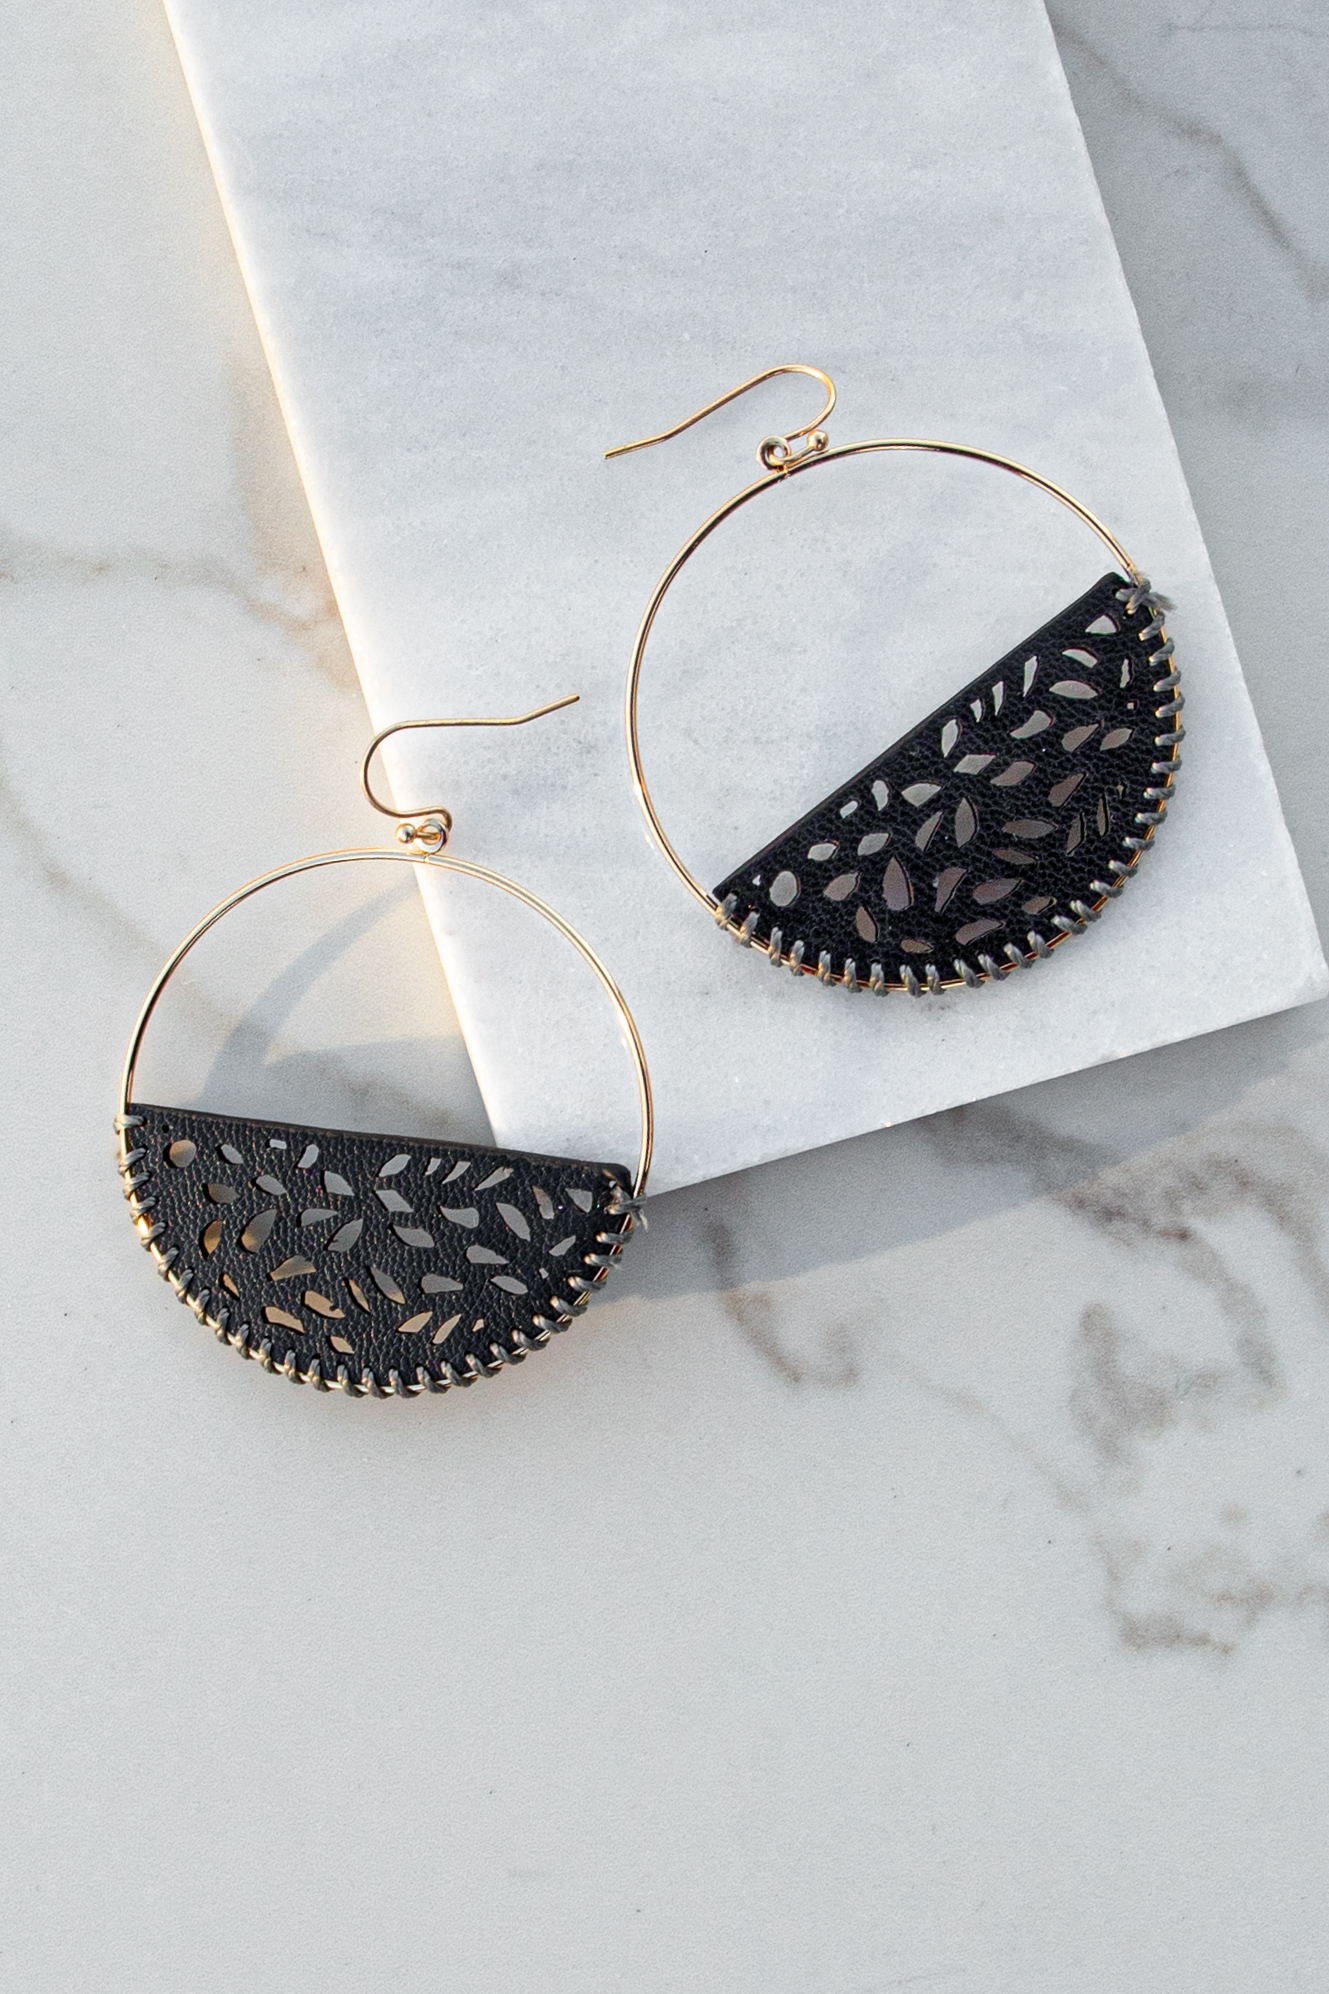 Black Faux Leather Earrings with Laser Cut Out Details